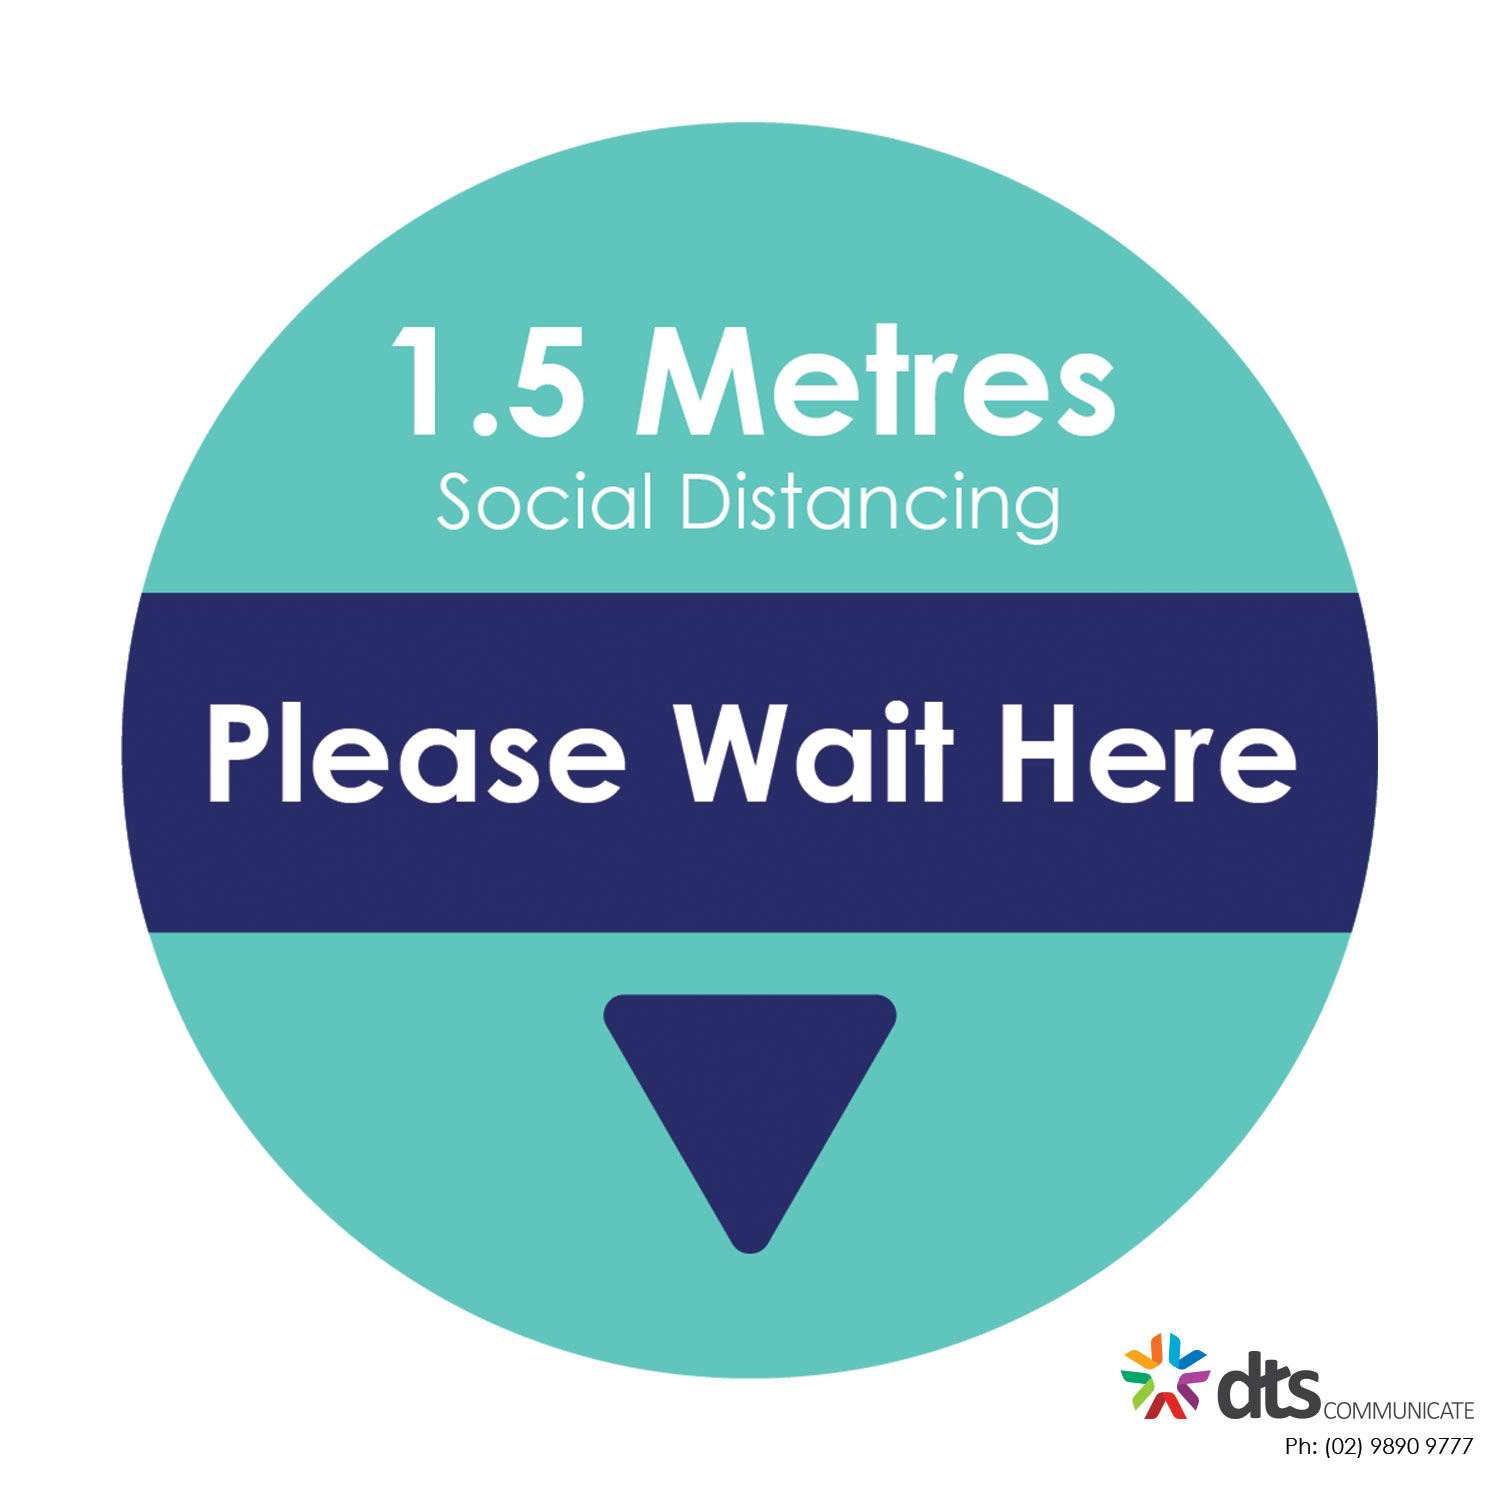 XLART DTS Covid19 Covid Floor Stickers Decals Social Distancing Sydney Melbourne Australia please wait here style 14